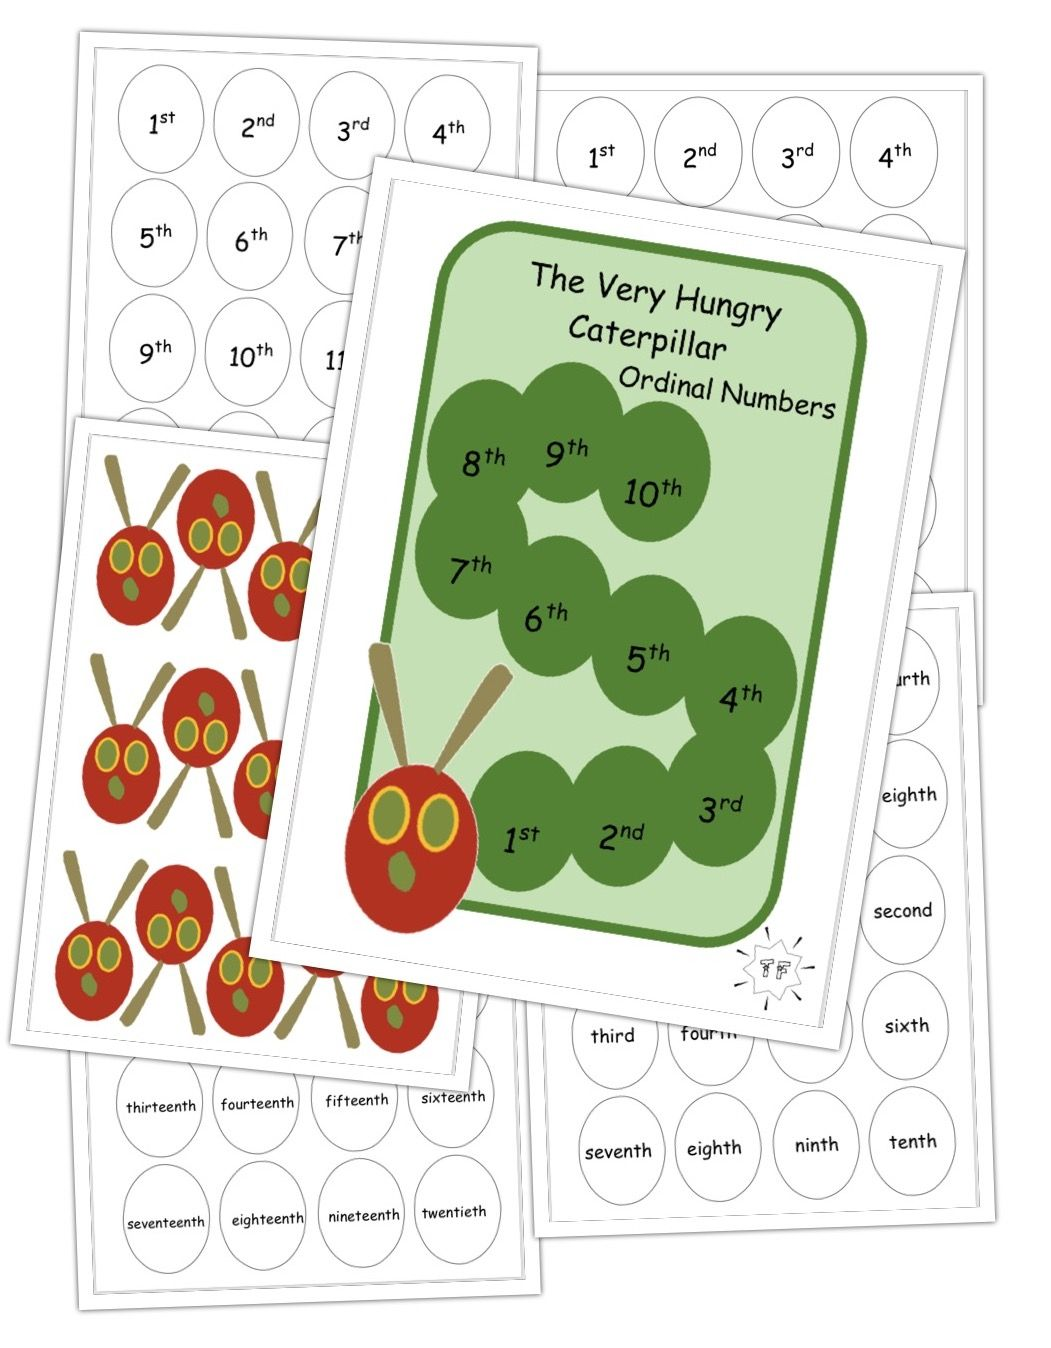 The Very Hungry Caterpillar Ordinal Counting